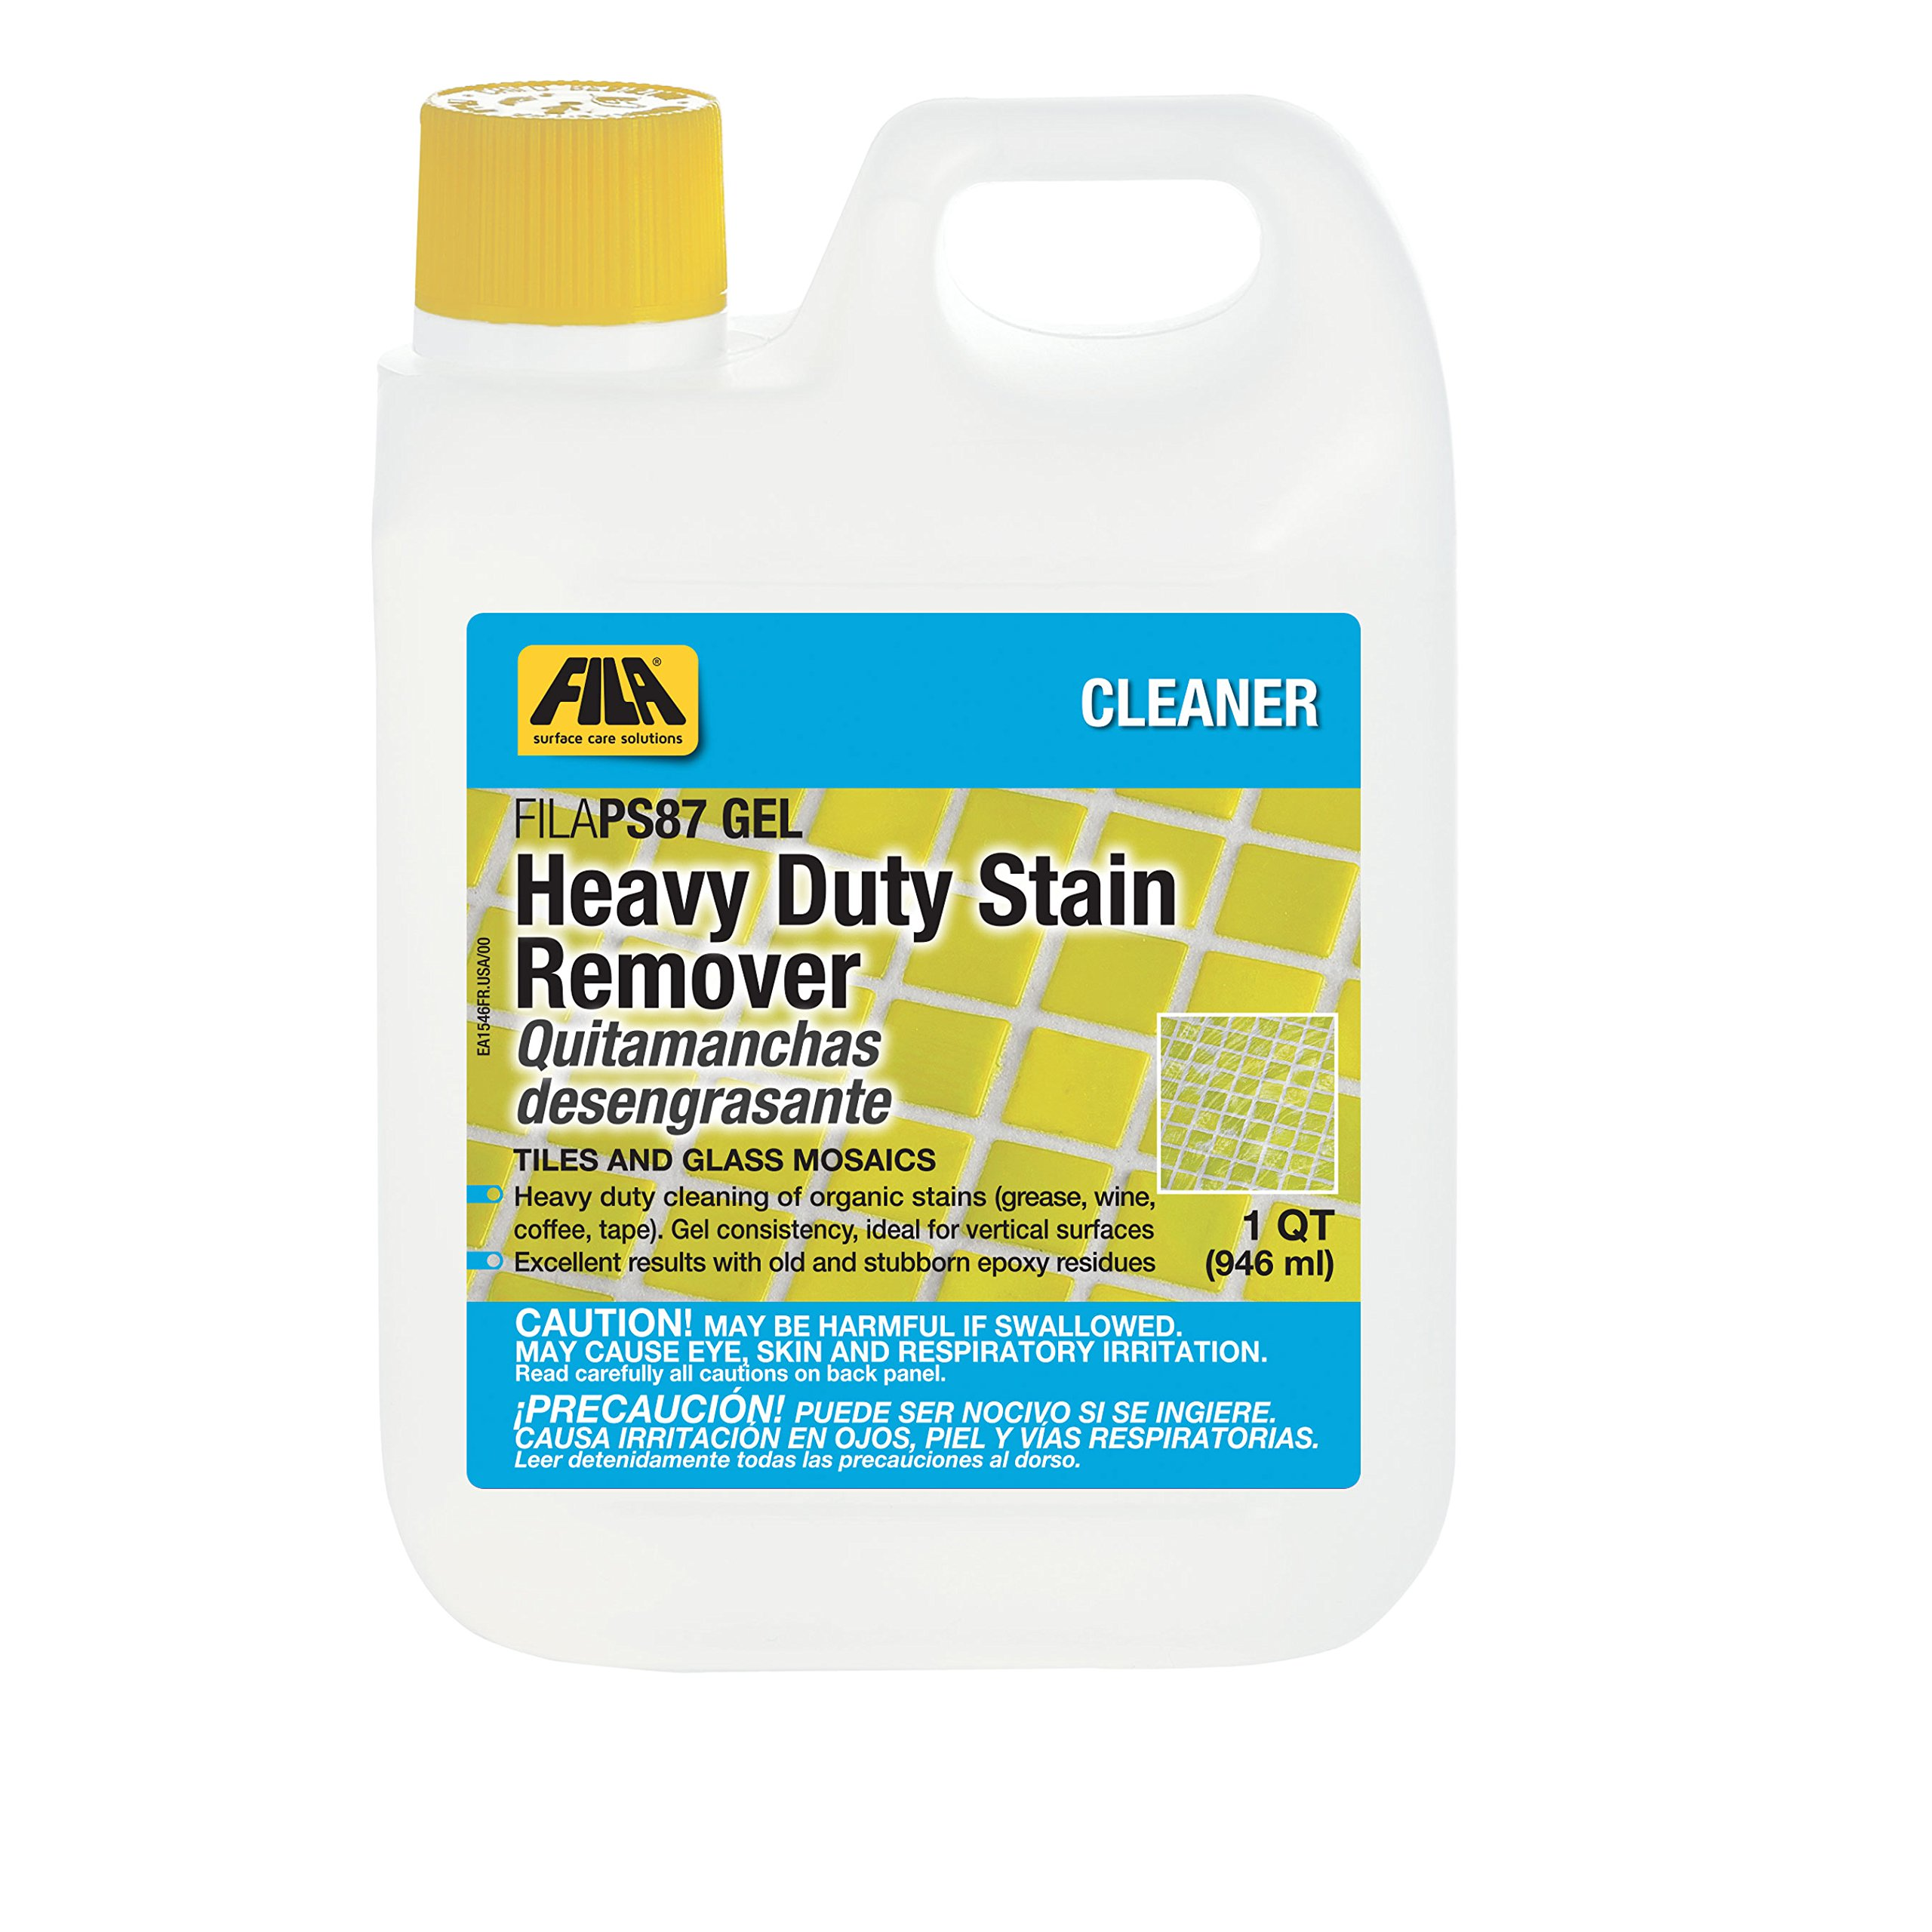 FILA Heavy Duty Stain Remover PS87 Gel 1 QT, Epoxy Grout Haze Remover, Stain Remover for Wine, Grease, Coffee and other food stains, ideal for Porcelain Tile, Ceramic Tile, Glass Mosaic.